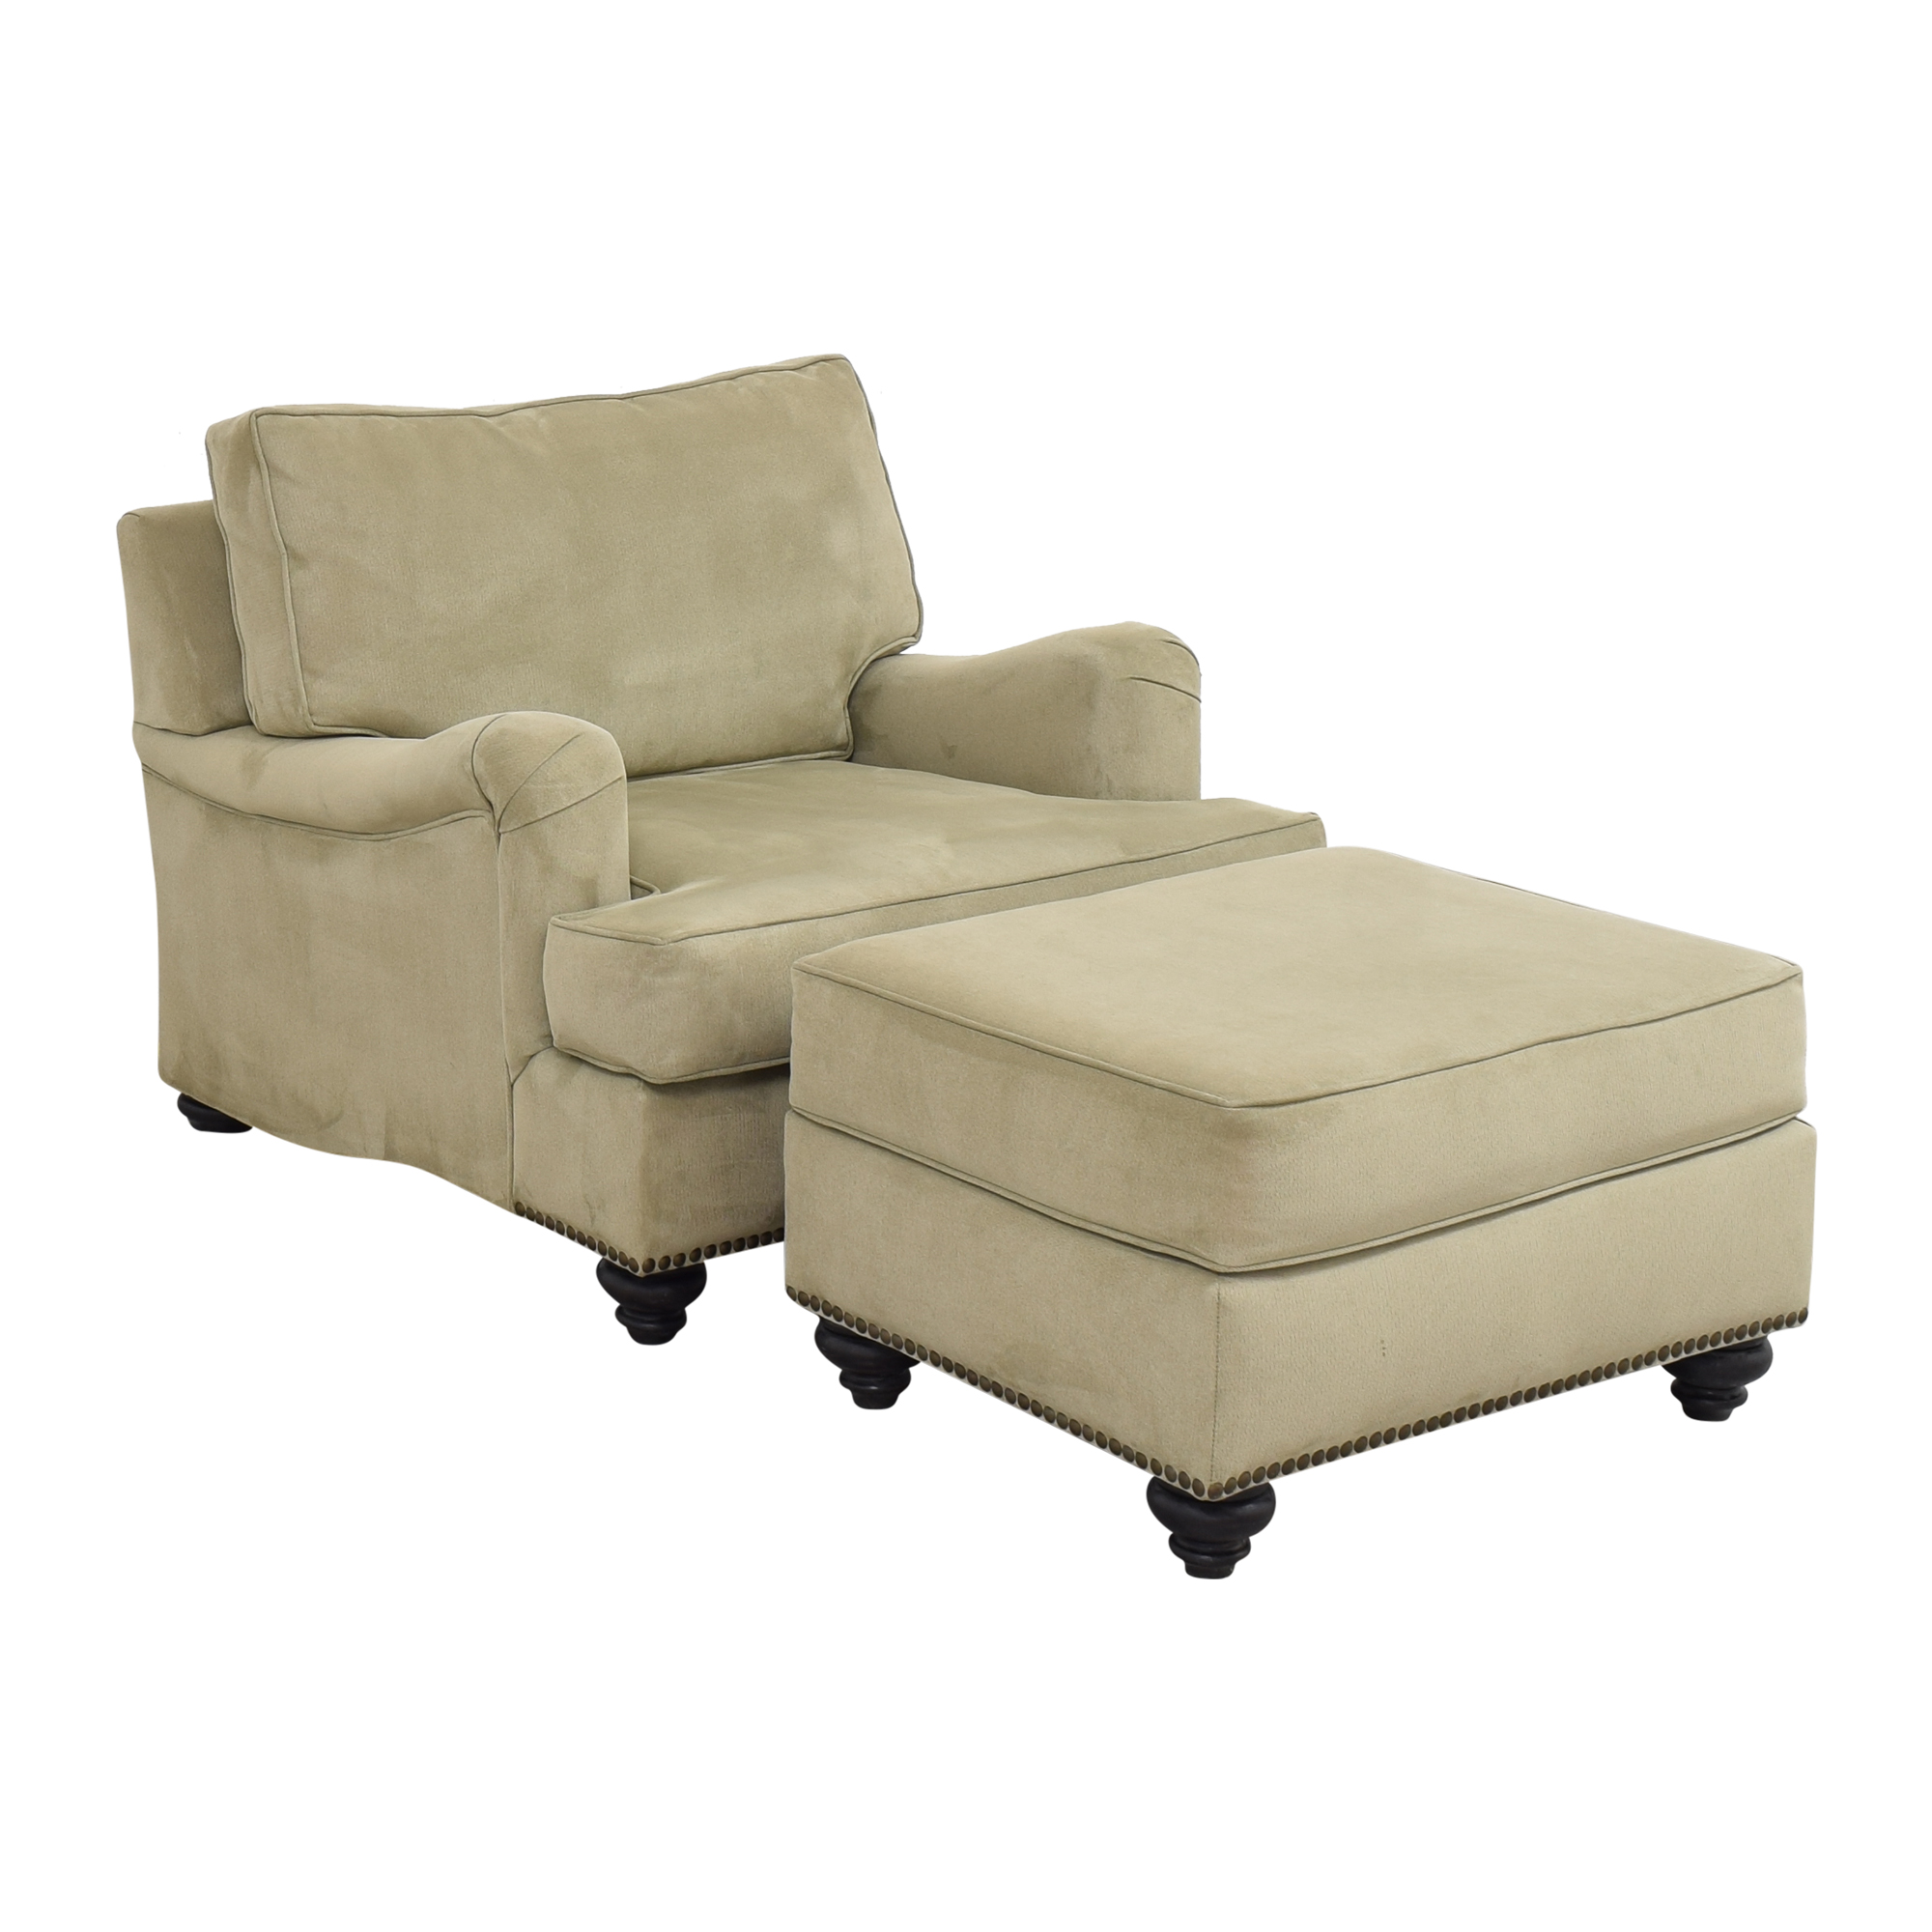 Nailhead Accent Chair with Ottoman used